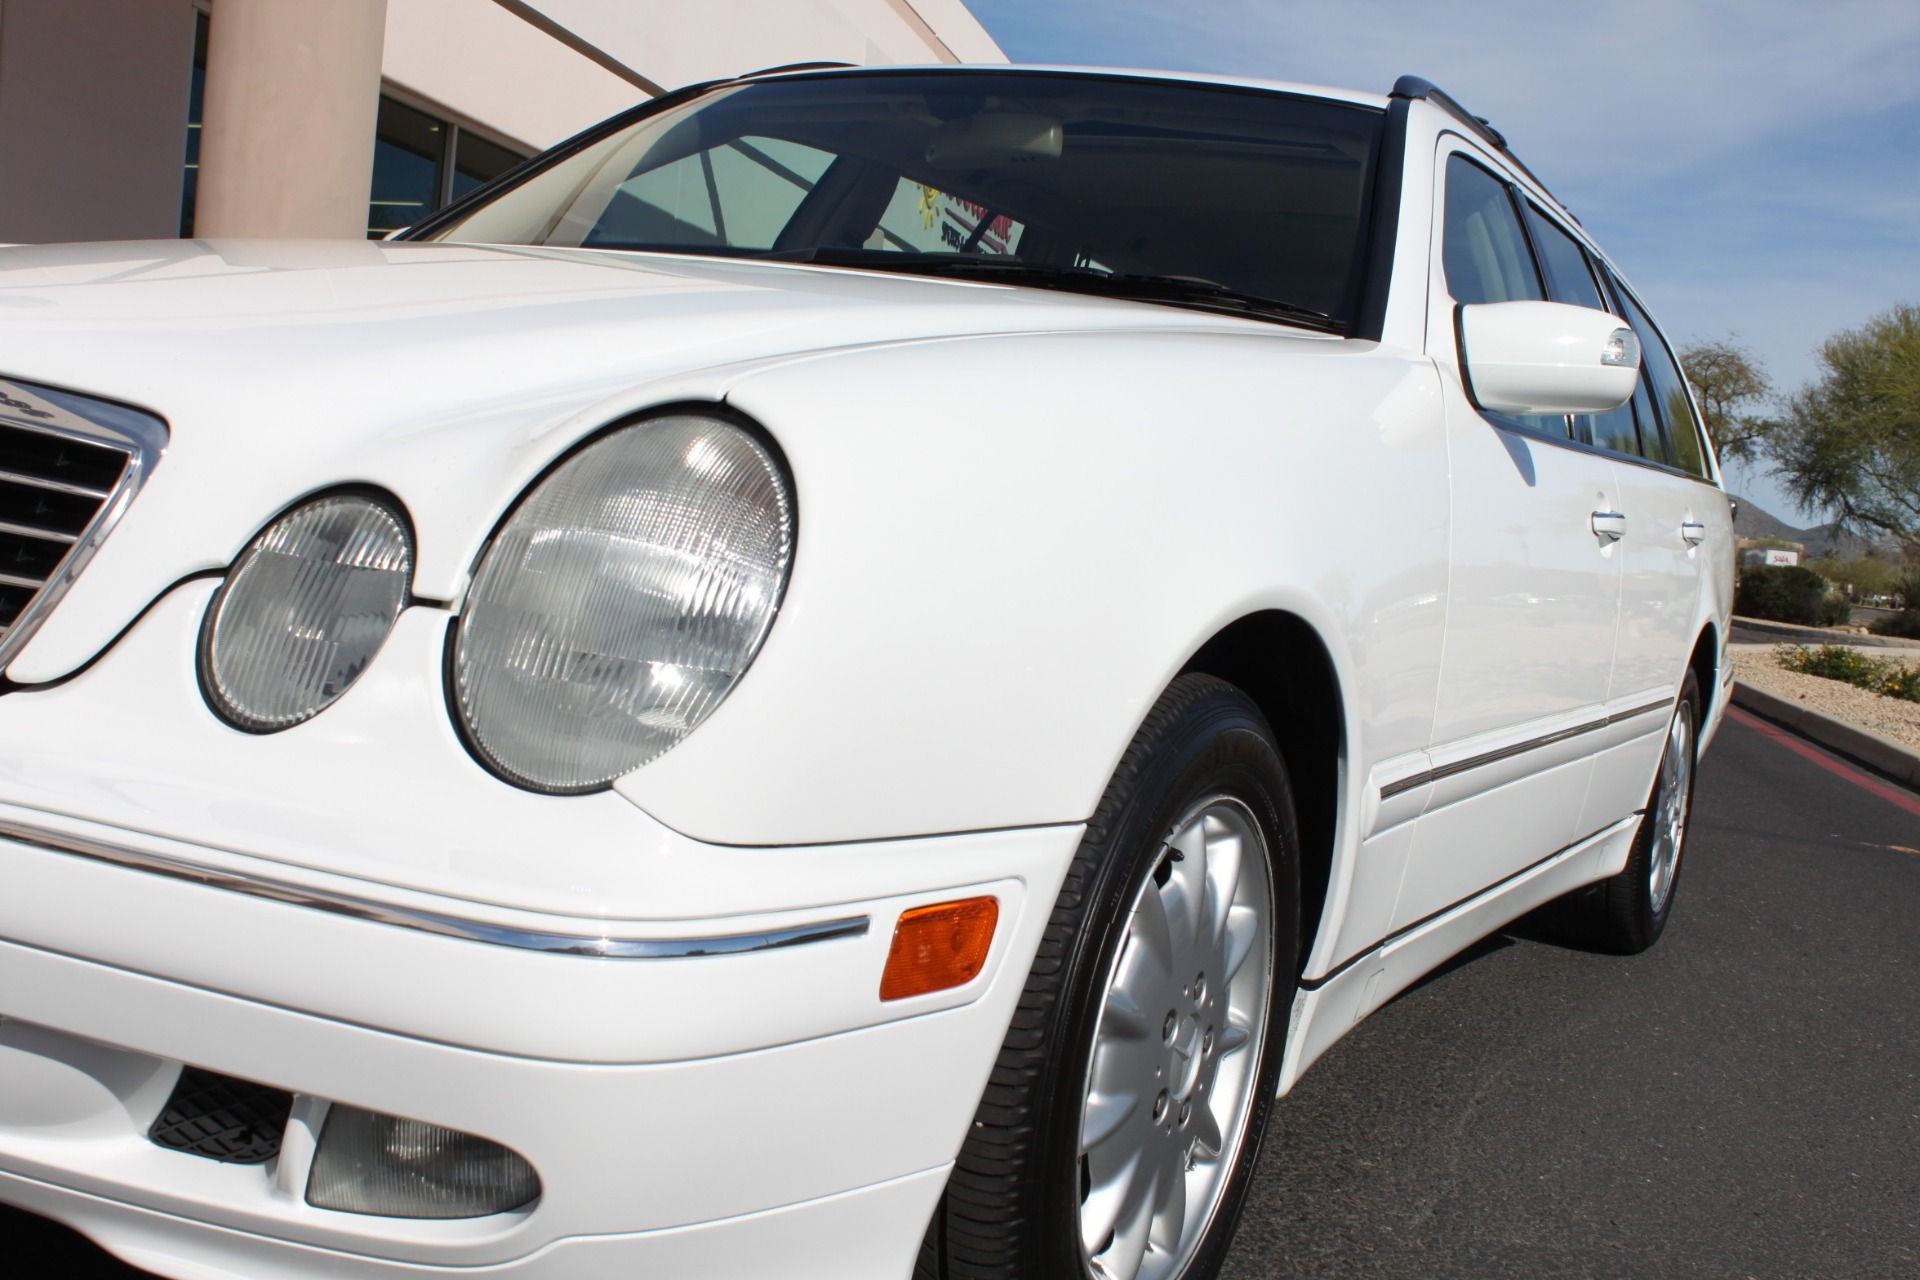 Used-2000-Mercedes-Benz-E-Class-Wagon-Chevrolet